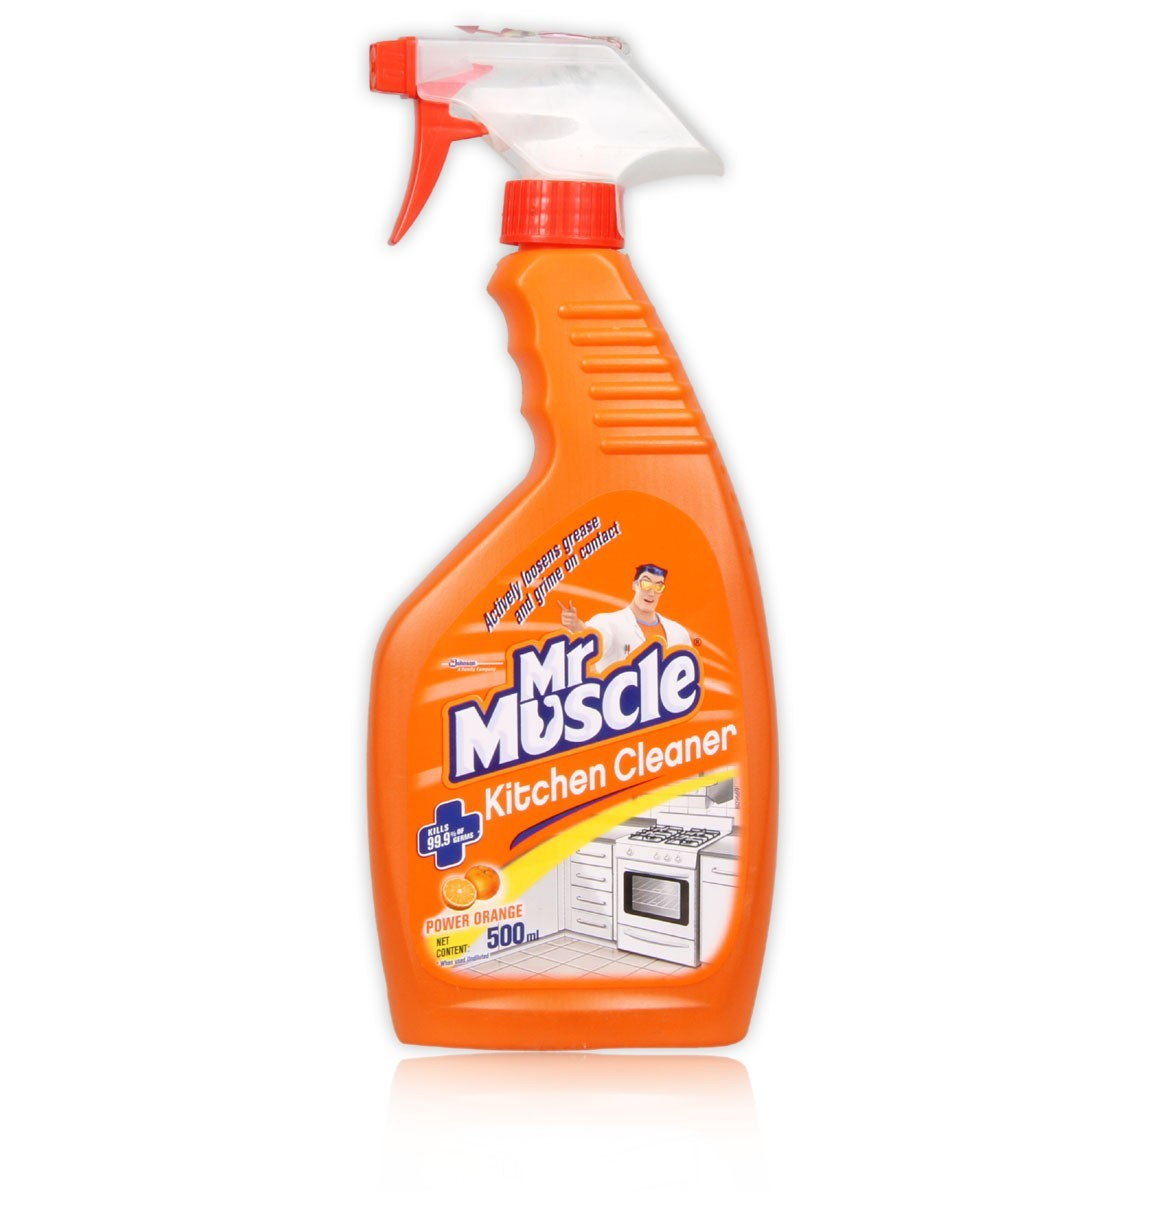 Merveilleux Mr. Muscle Kitchen Cleaner